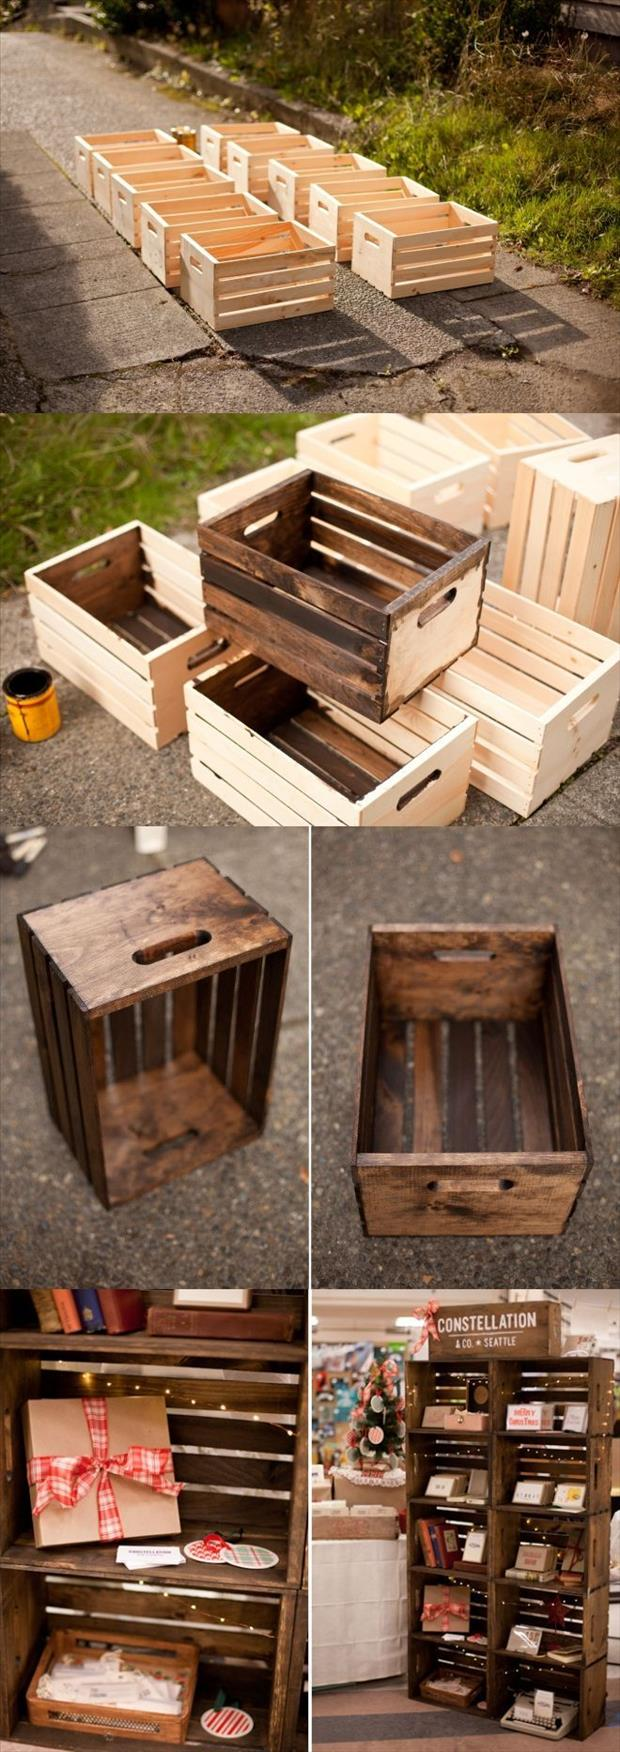 Amazing Crafty Crate Ideas 2